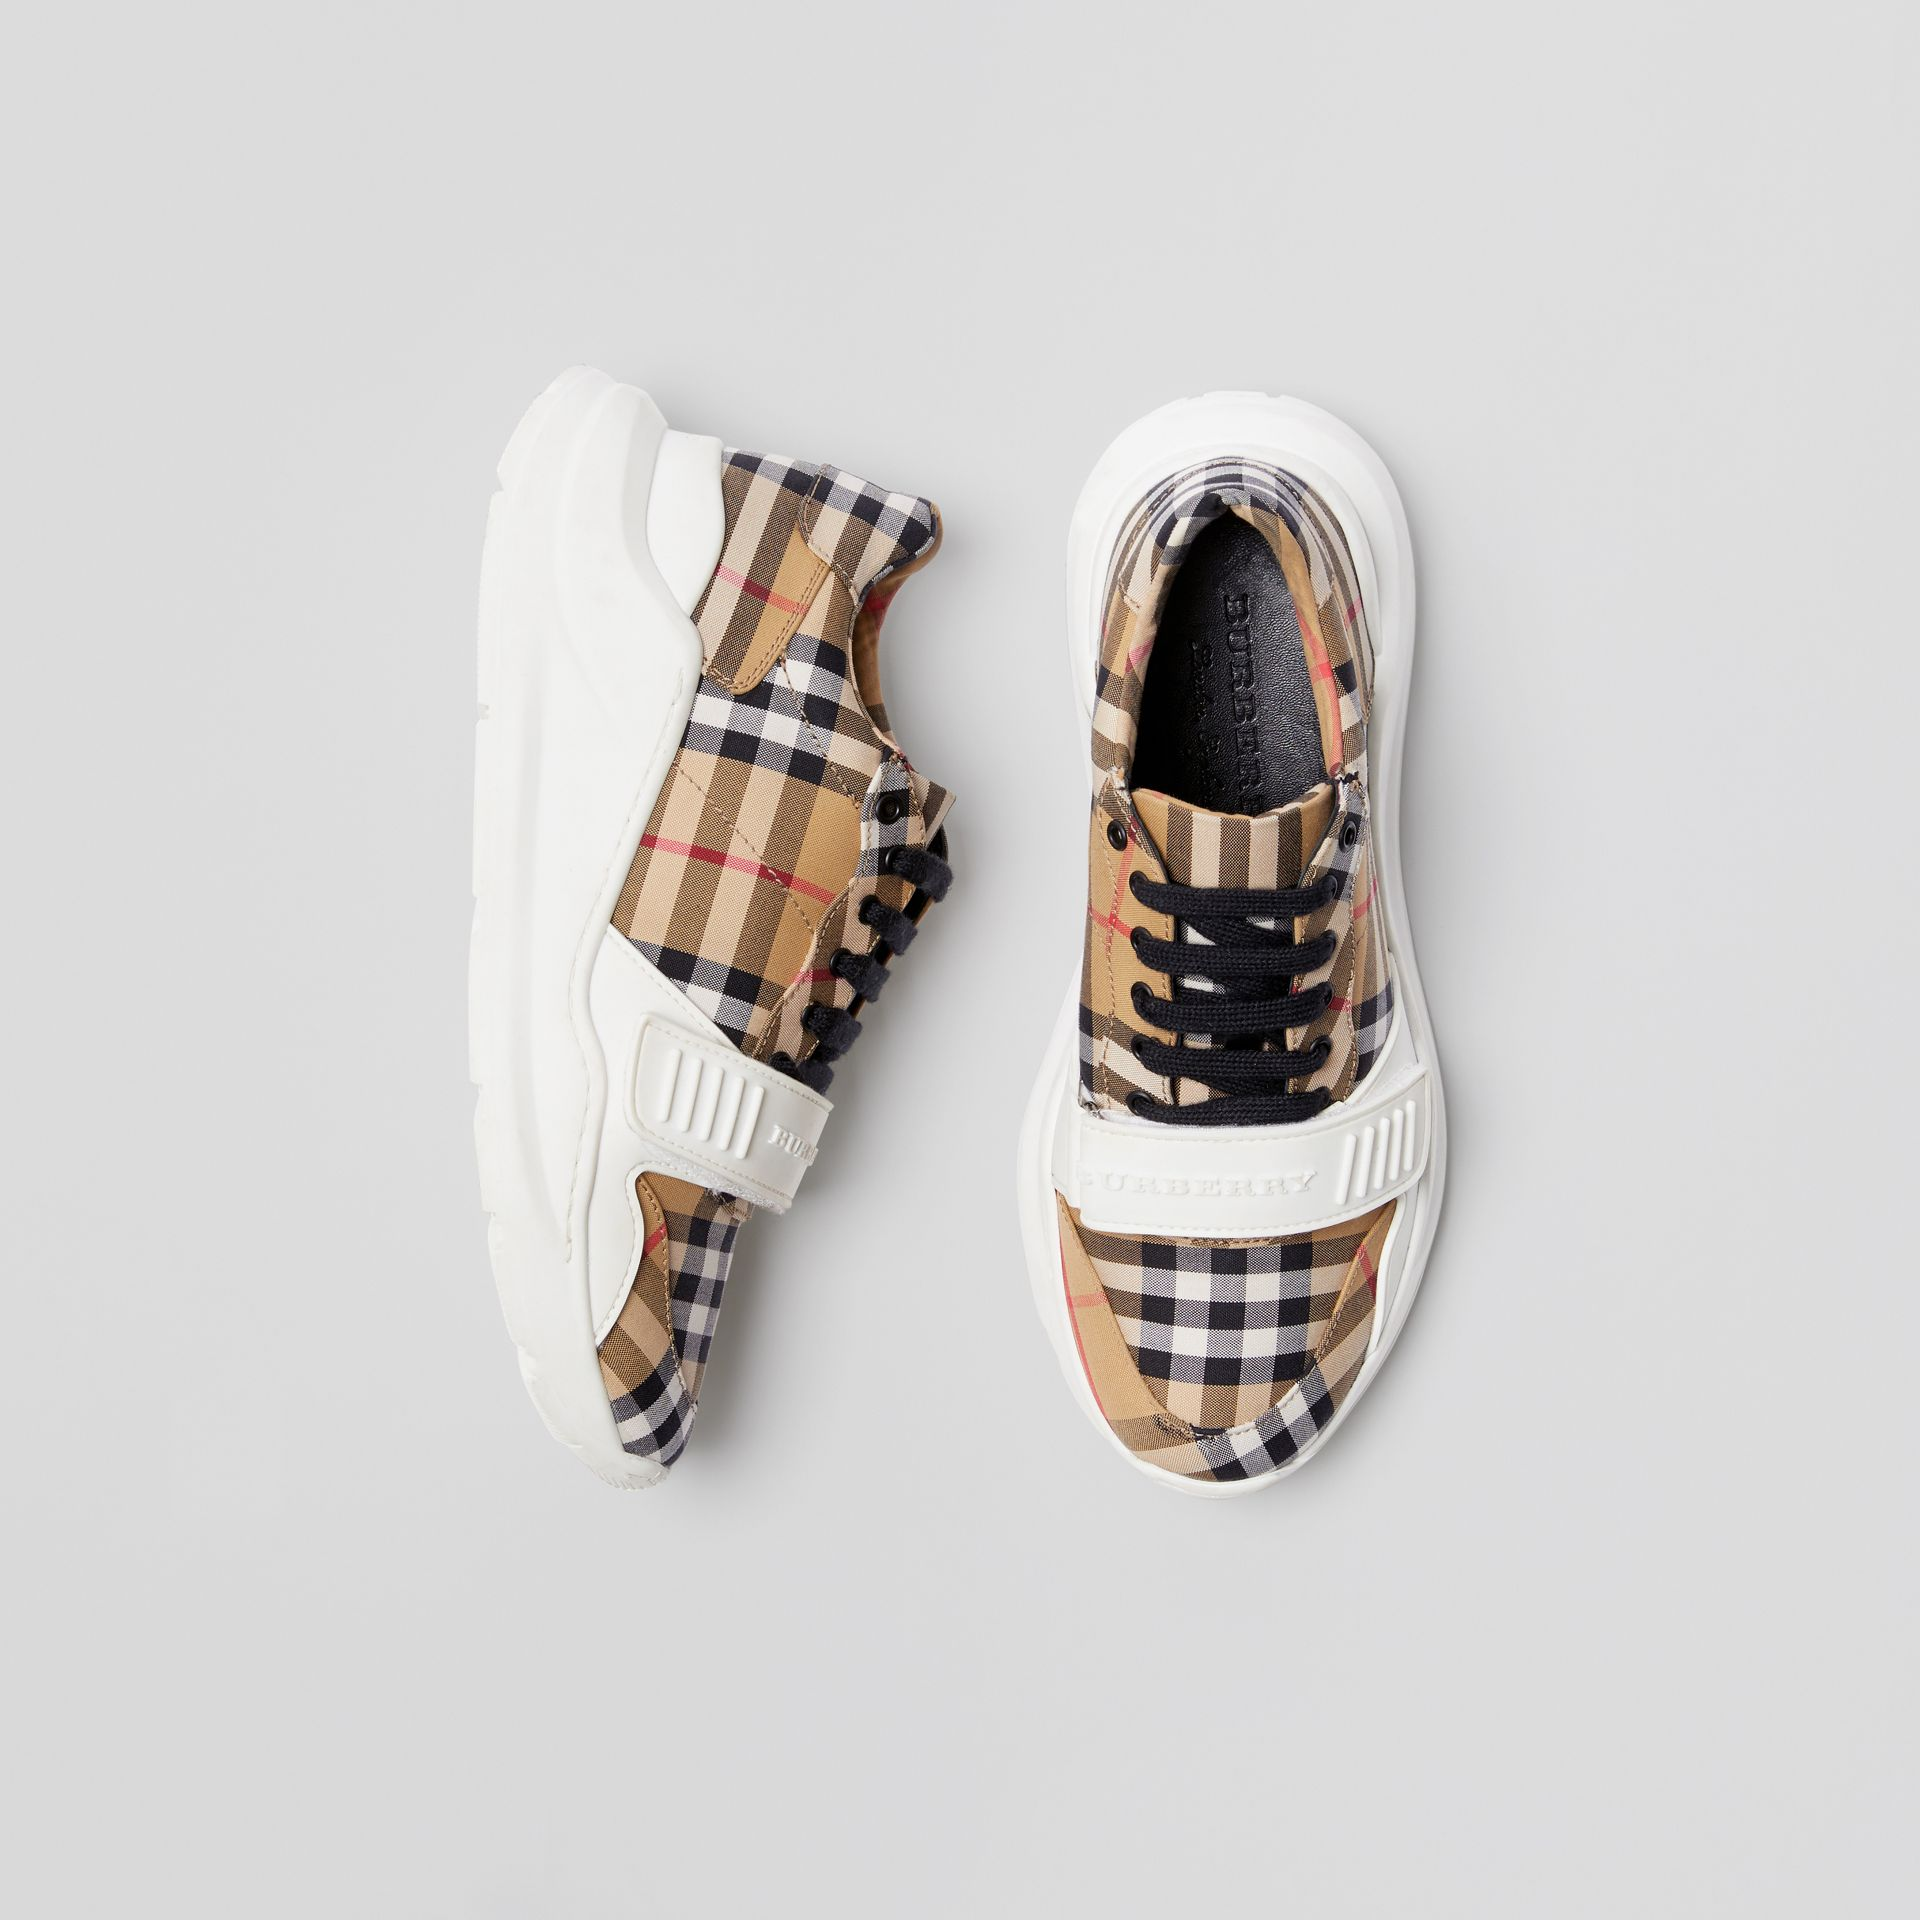 Sneakers en coton à motif Vintage check (Jaune Antique) - Homme | Burberry - photo de la galerie 0